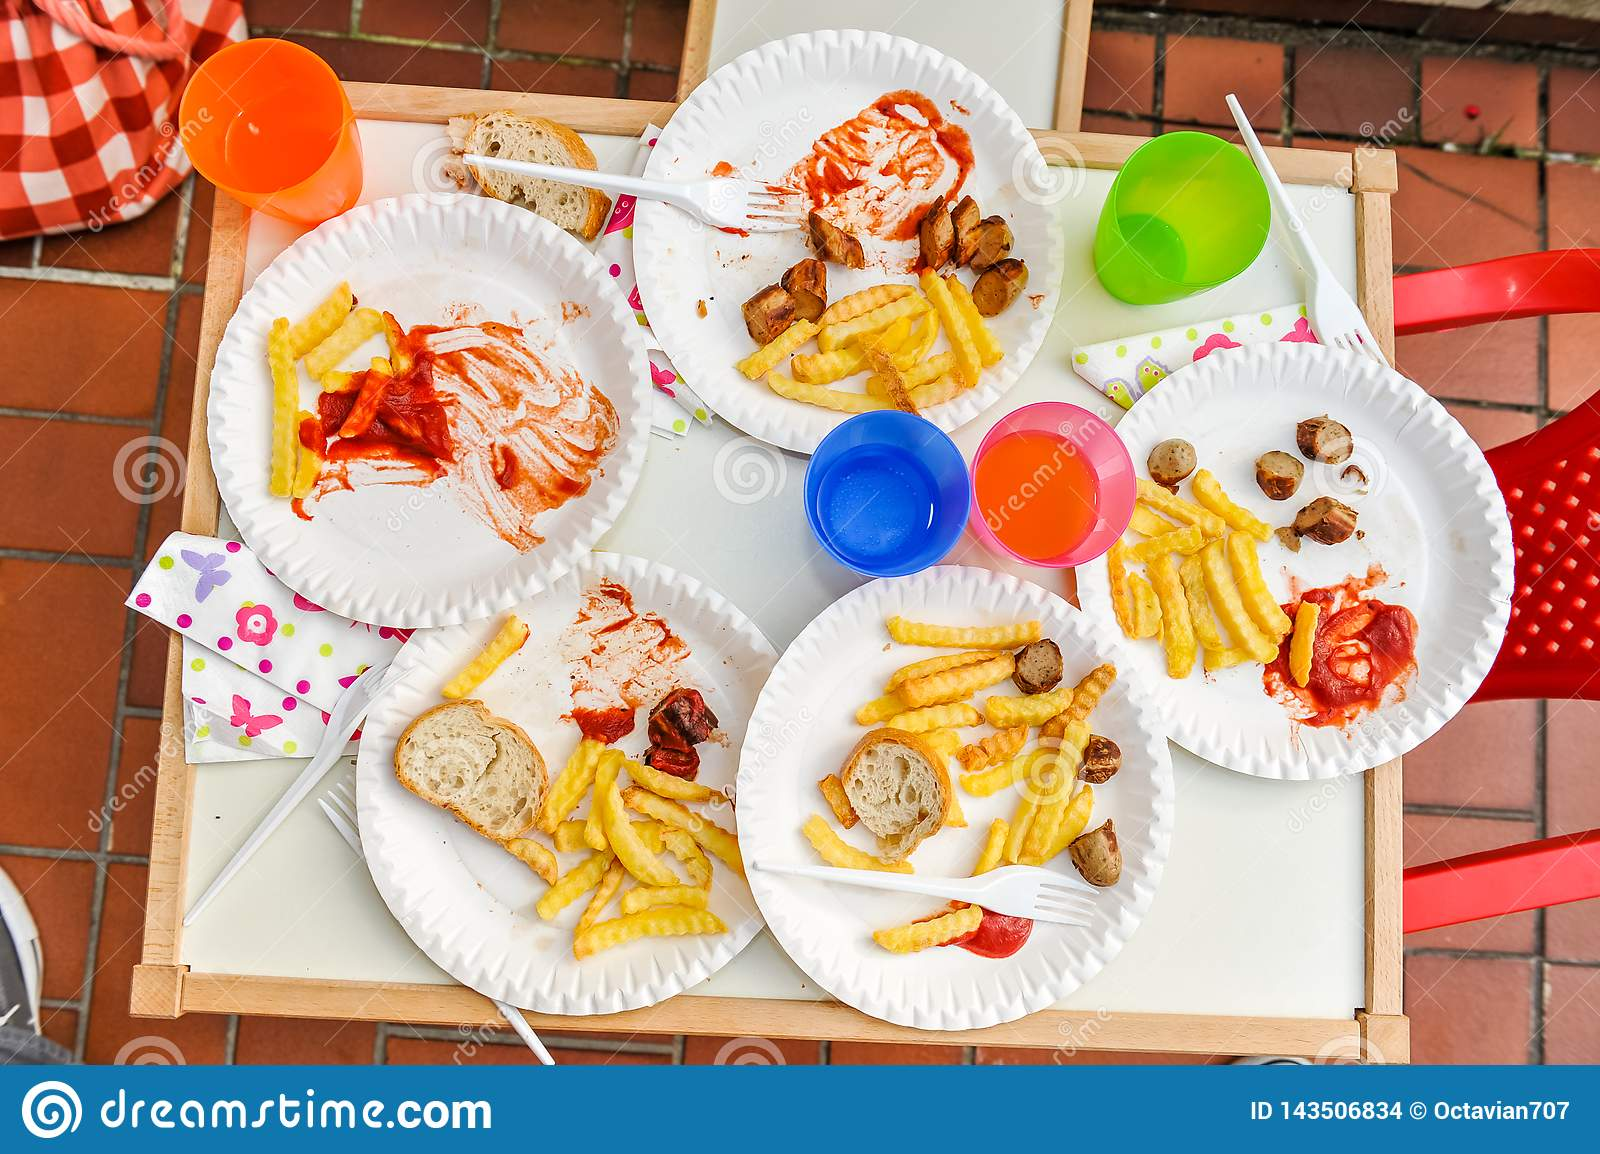 Children finished meal with french fries